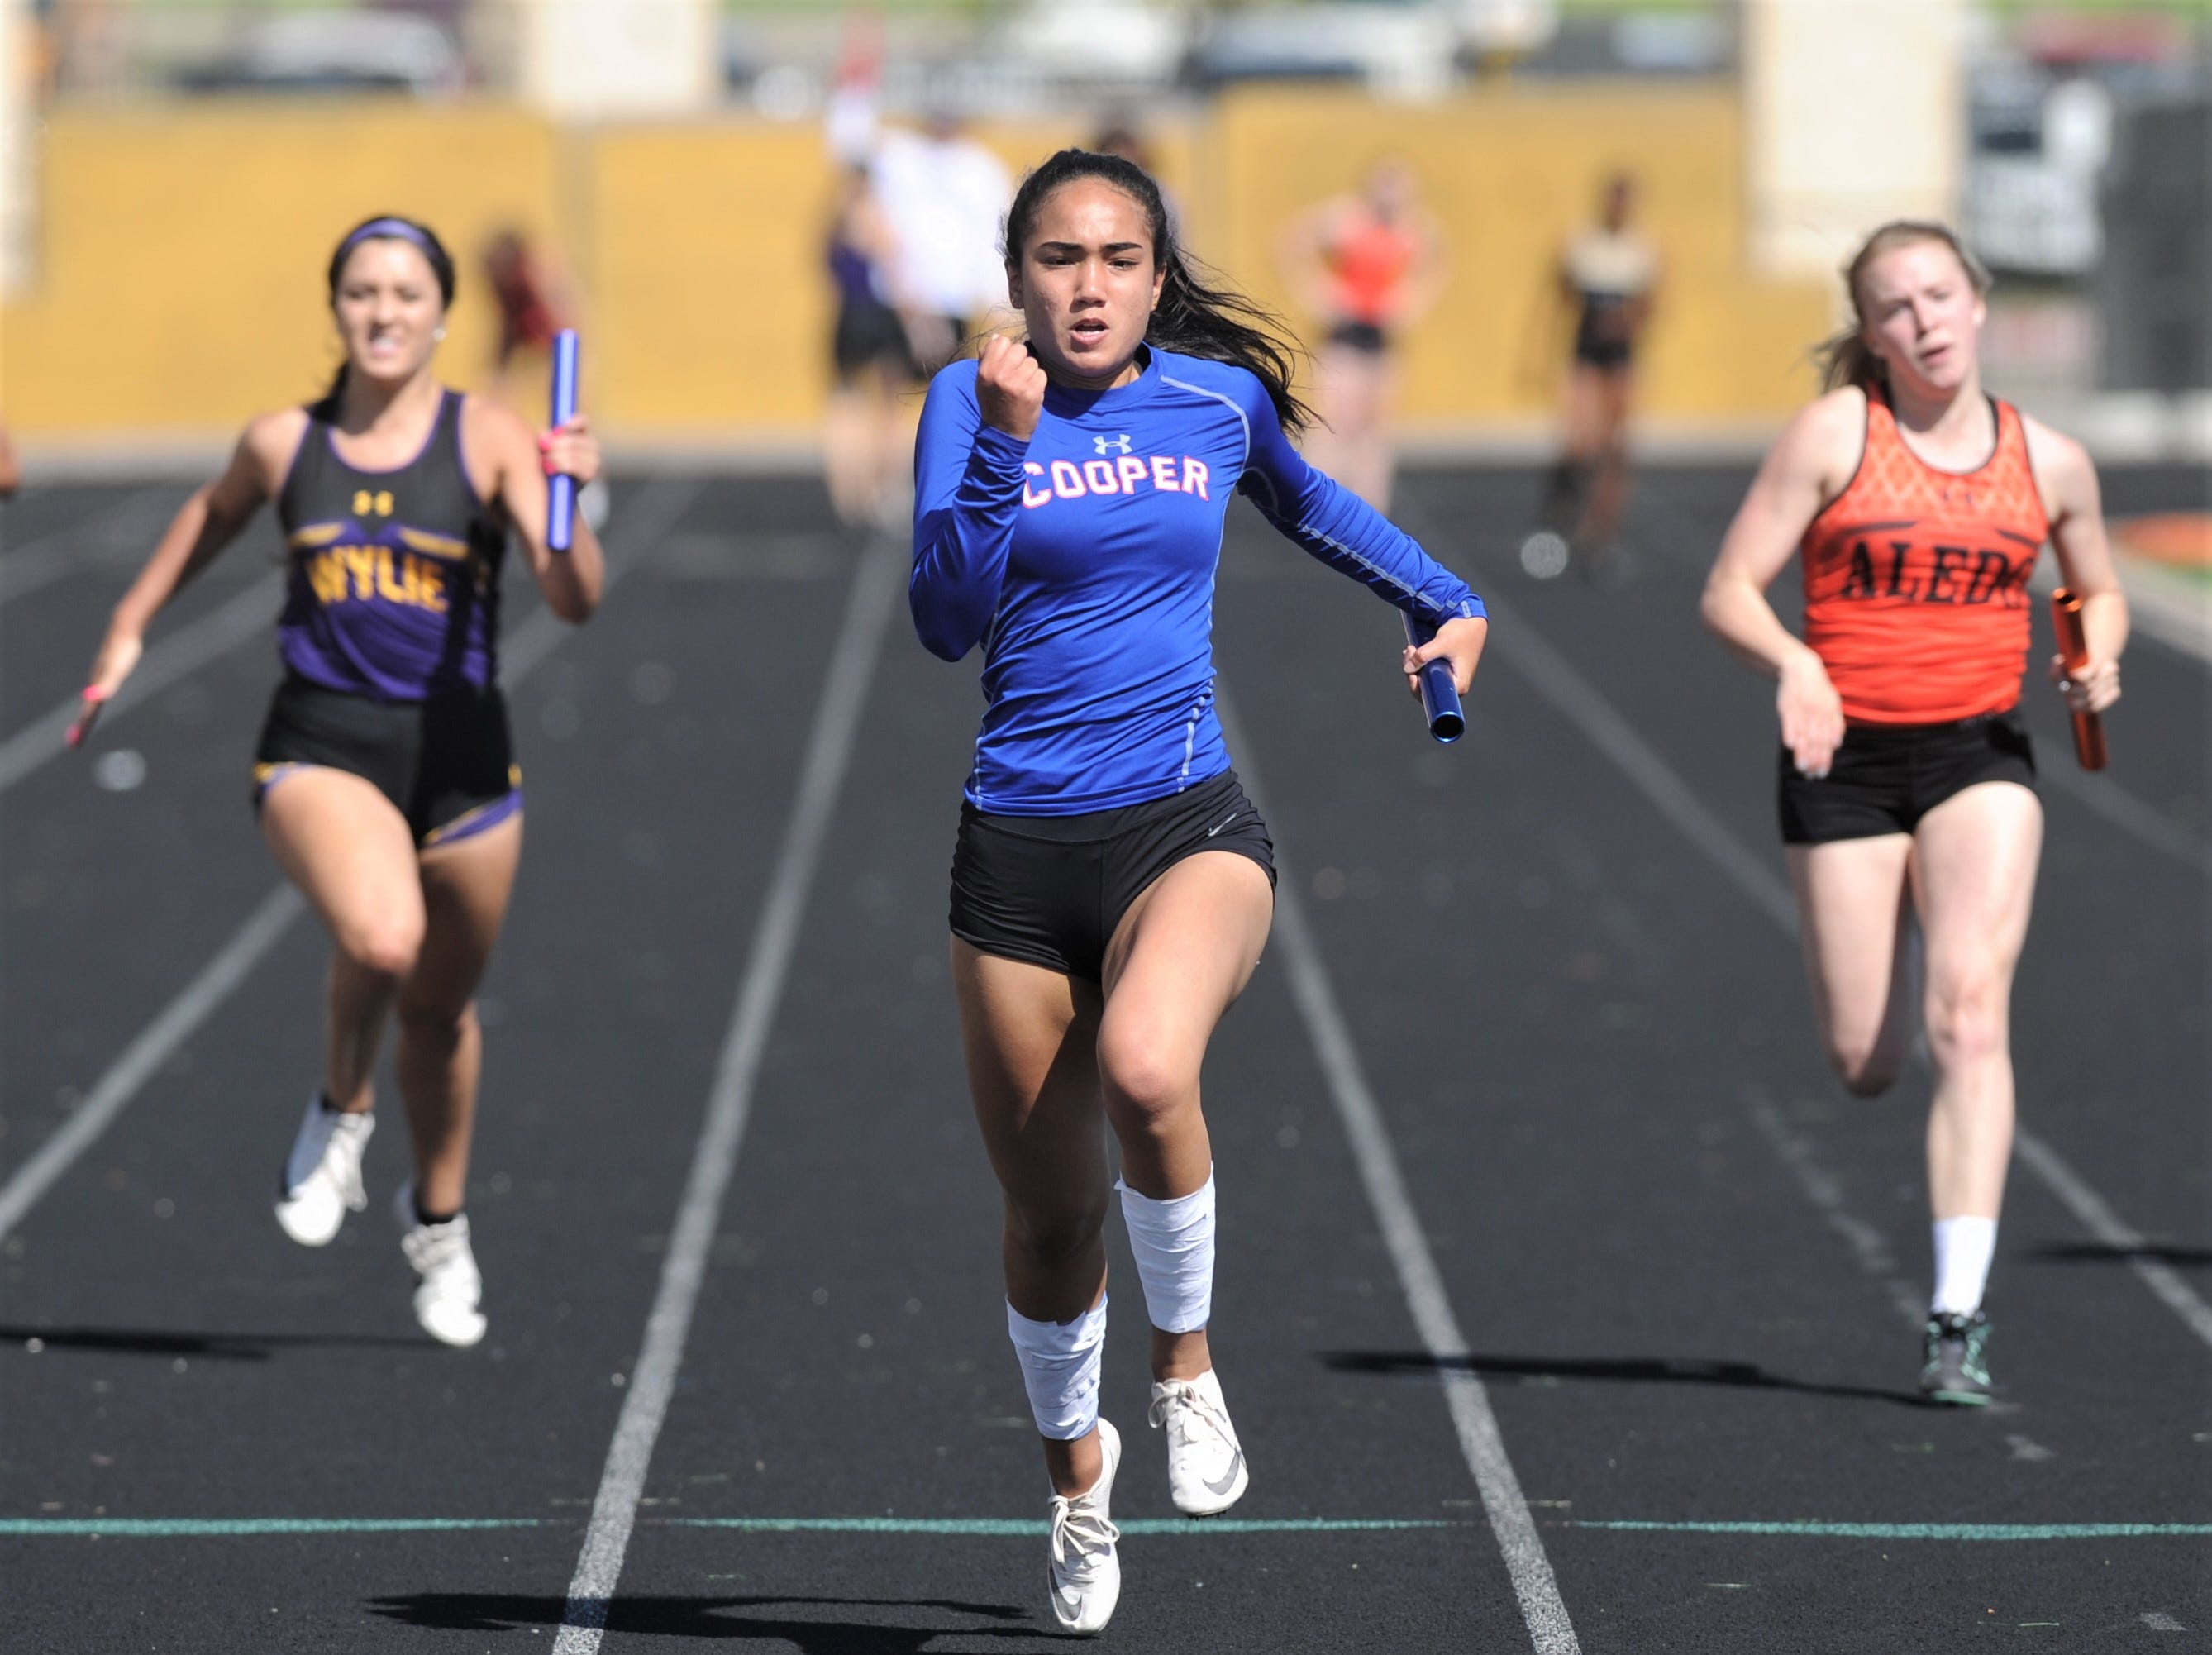 Cooper's Lexa Garcia, center, wins the 400-meter relay while Aledo's Sierra White, left, and Wylie's Madison LaBrenz follow. Garcia and Cooper teammates Kristian Davis, Natashi Hopes and Iyonnia Cherry won the event in 49.98, followed by Aledo (50.91) and Wylie (51.14) at the District 4-5A track and field meet on Thursday, April 3, 2019, at Aledo's Bearcat Stadium.